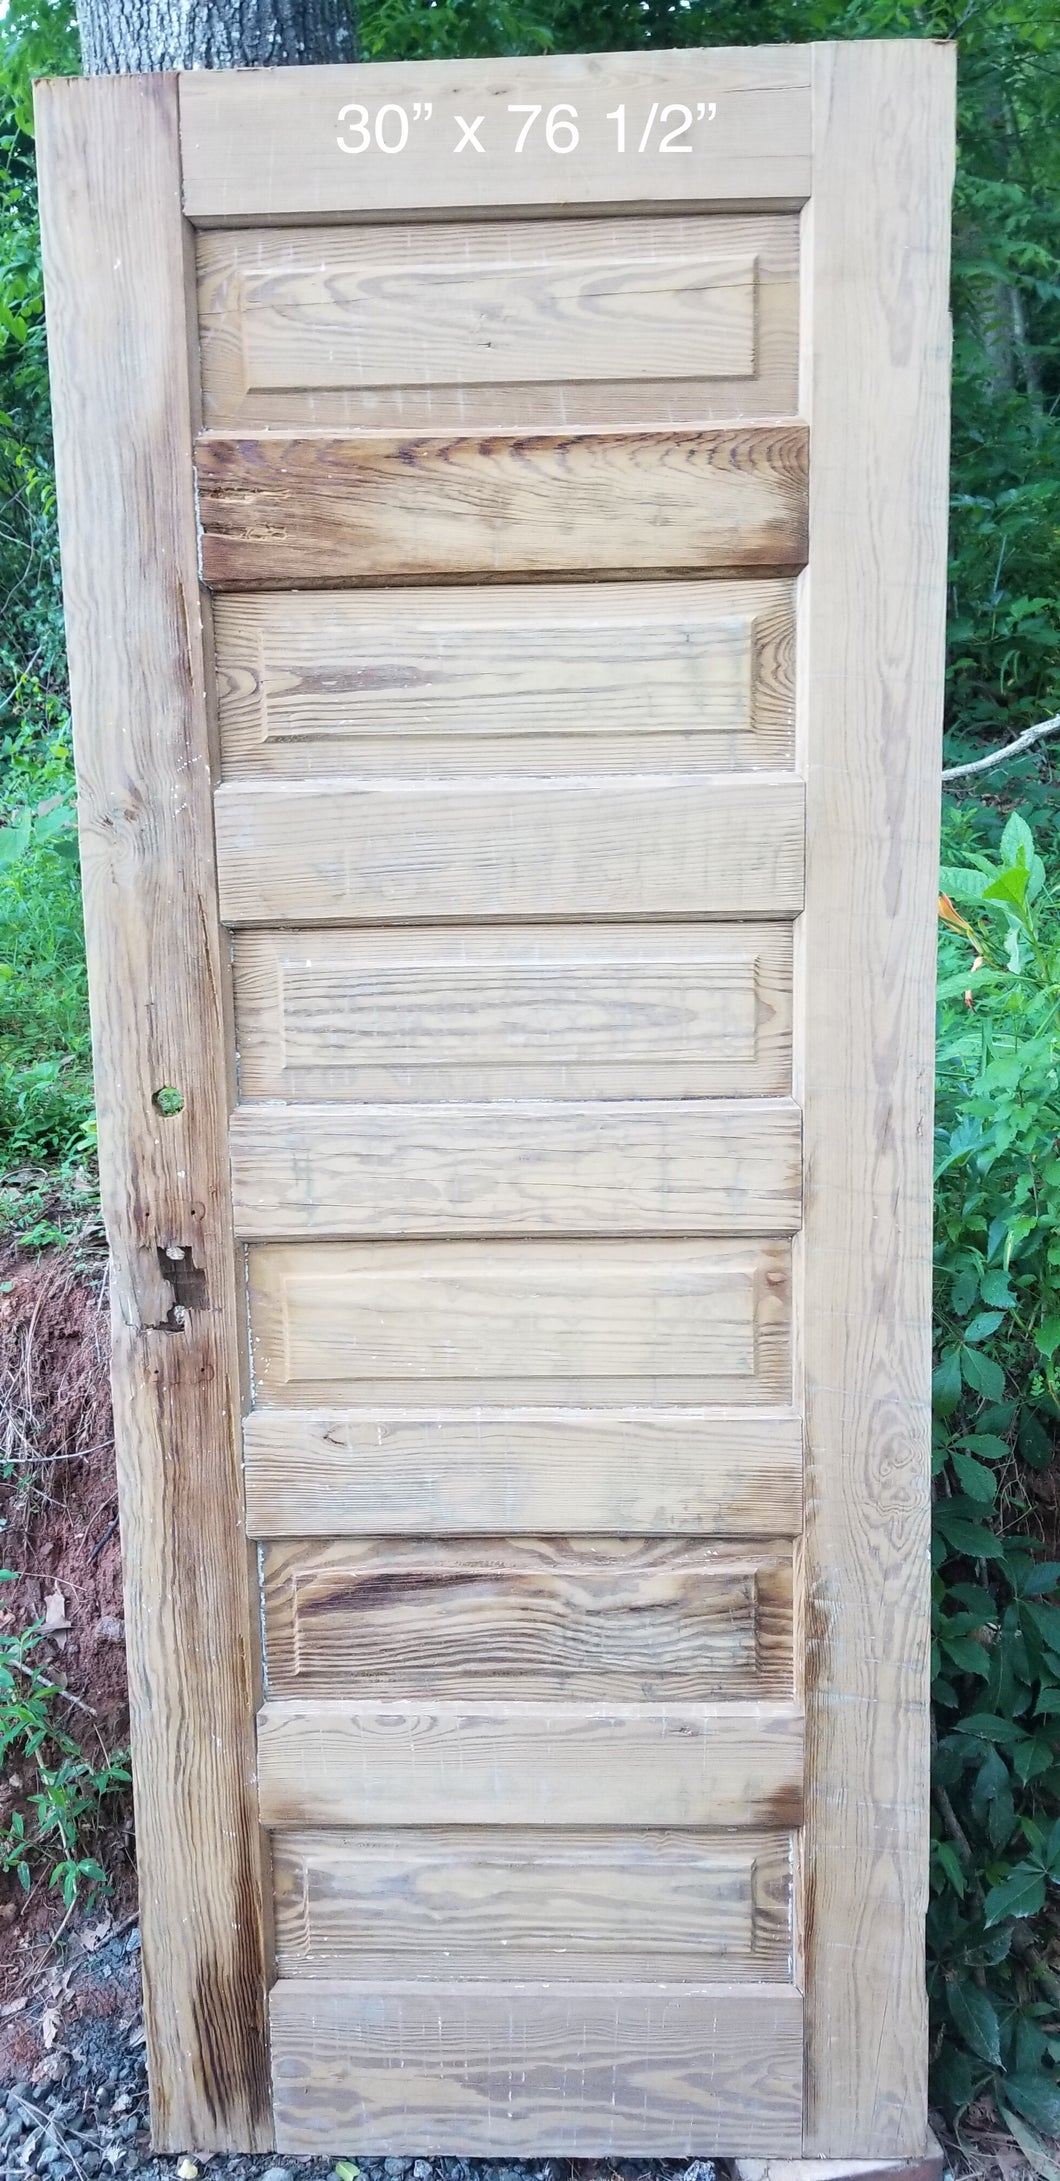 "30"" x 76 1/2"" Raised 6 panel pine door"